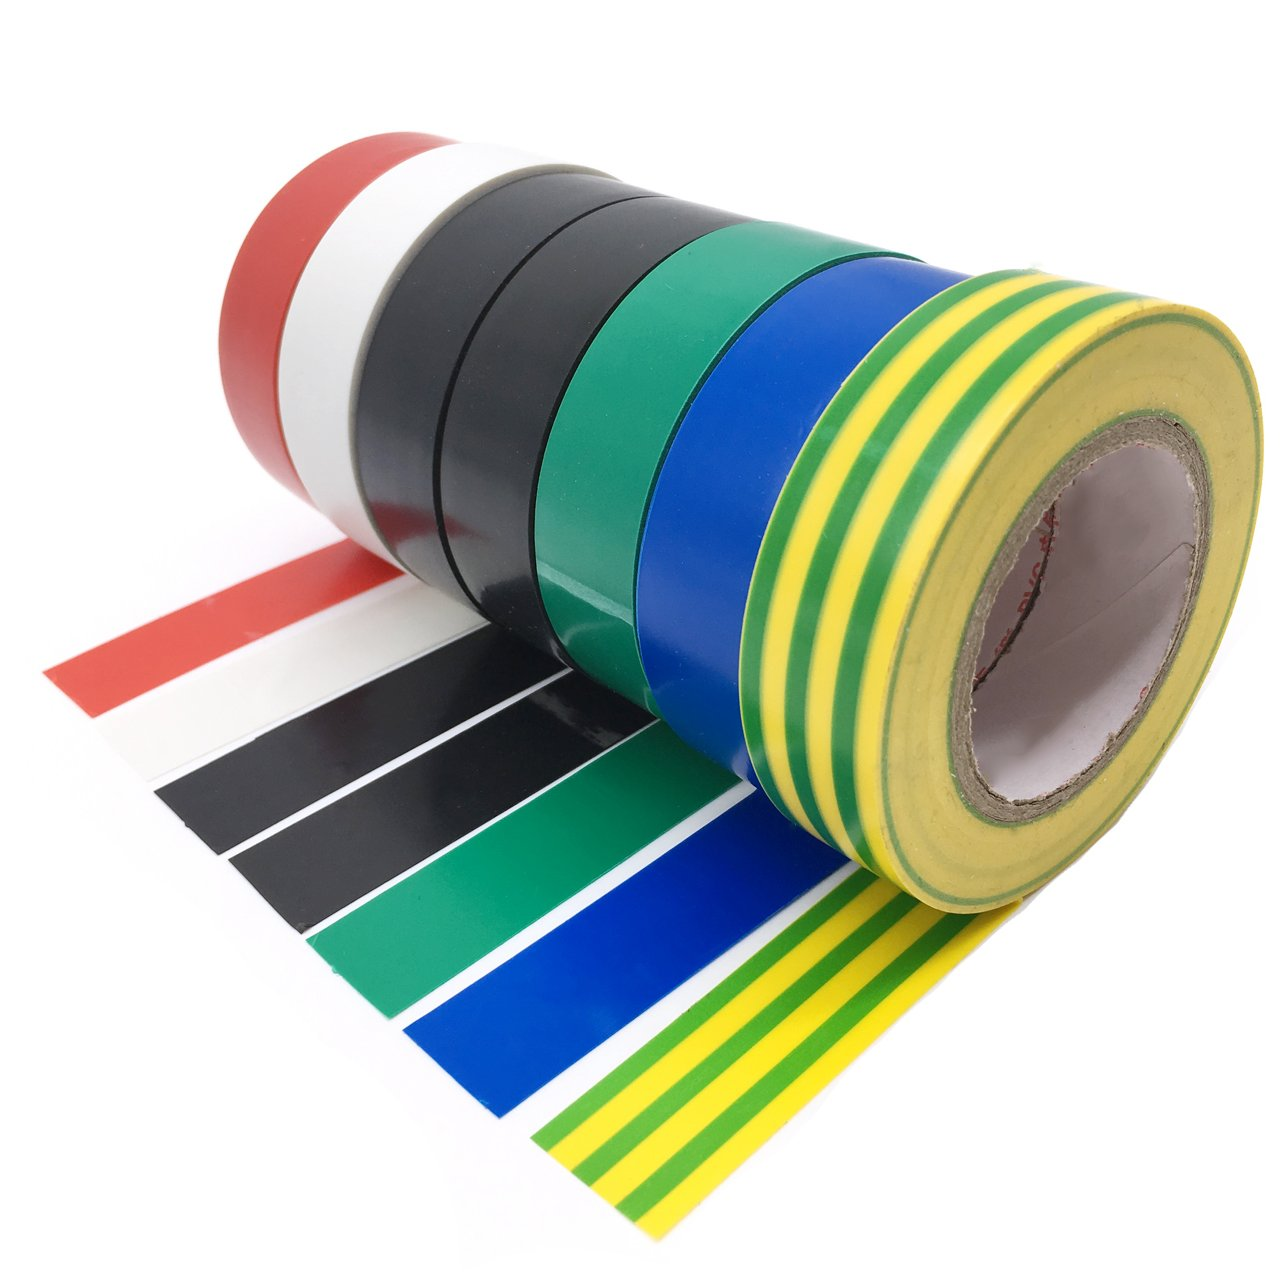 Insulating Tape 8 Pack 0.6 Inch 15M Electrical Insulation Tape Mixed Colour Tape YTBUBOR